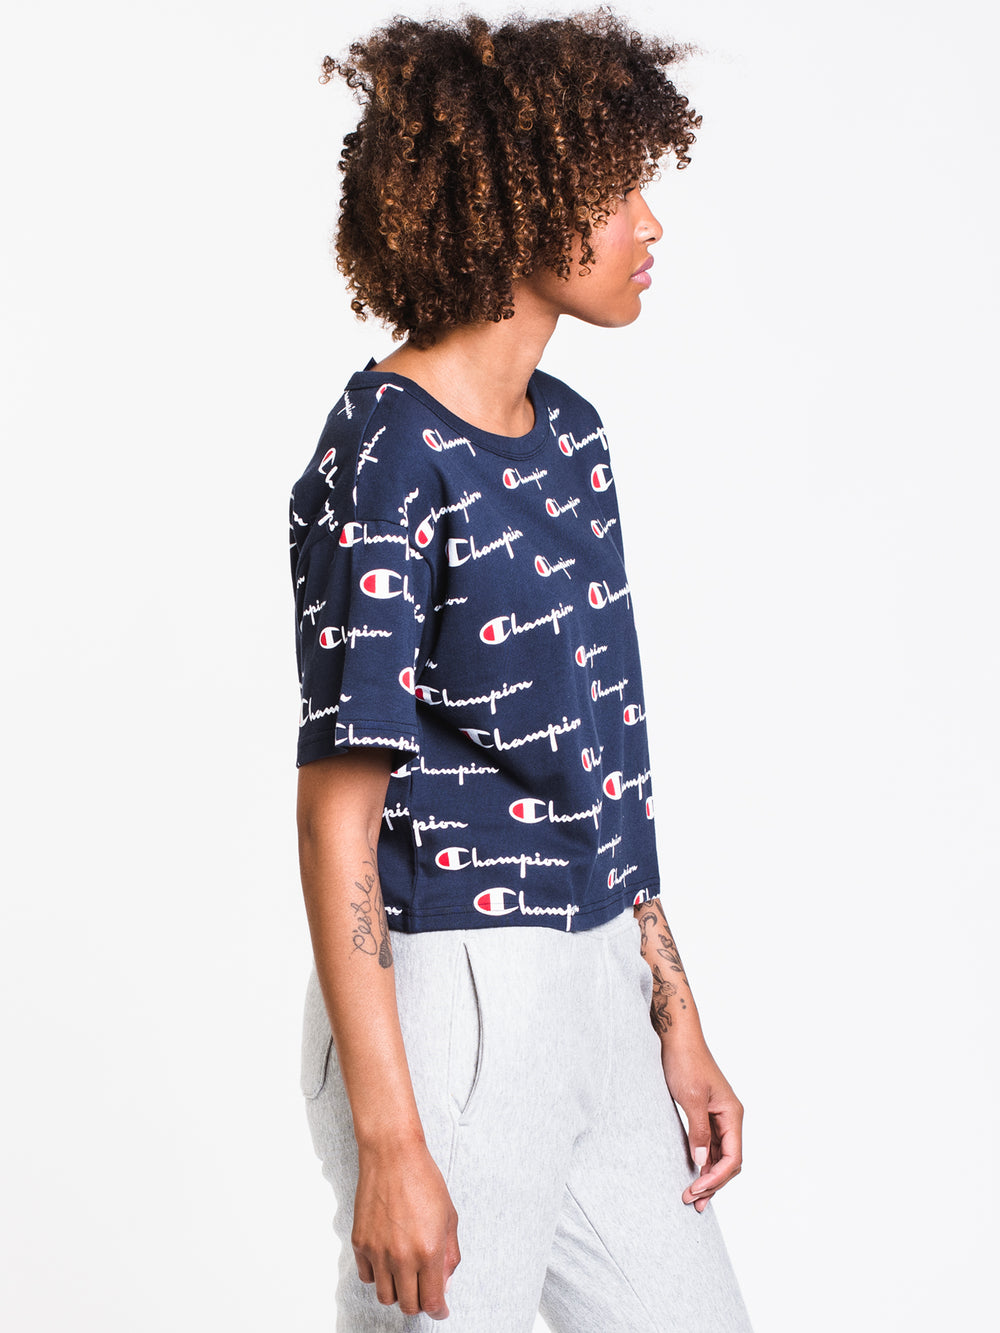 WOMENS HERITAGE ALL OVER PRINT CROP TEE - NAVY